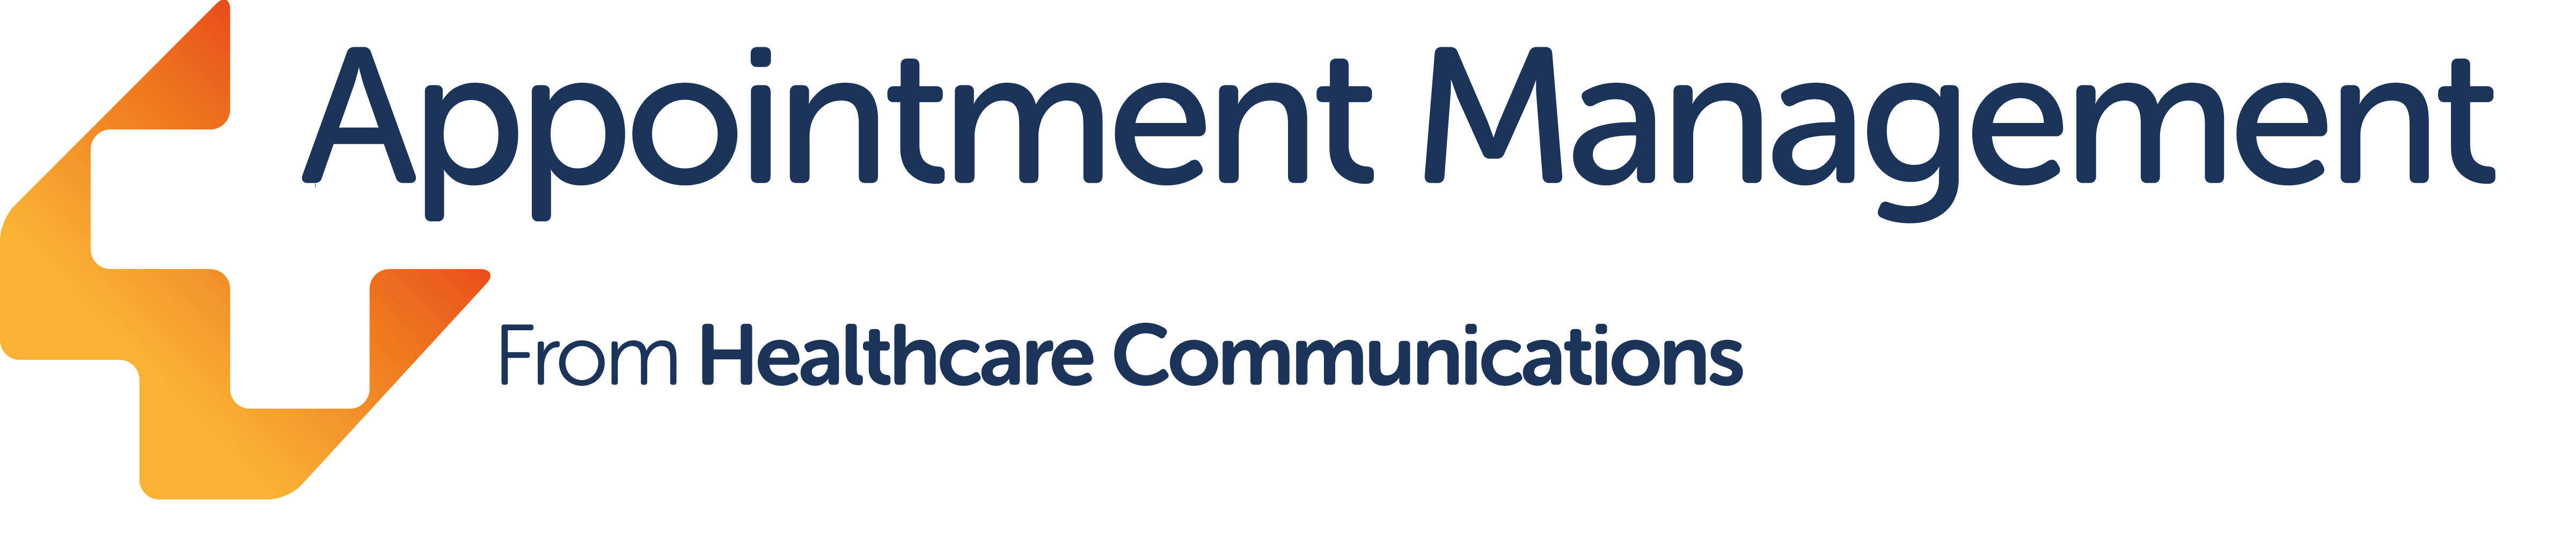 Appointment Management2